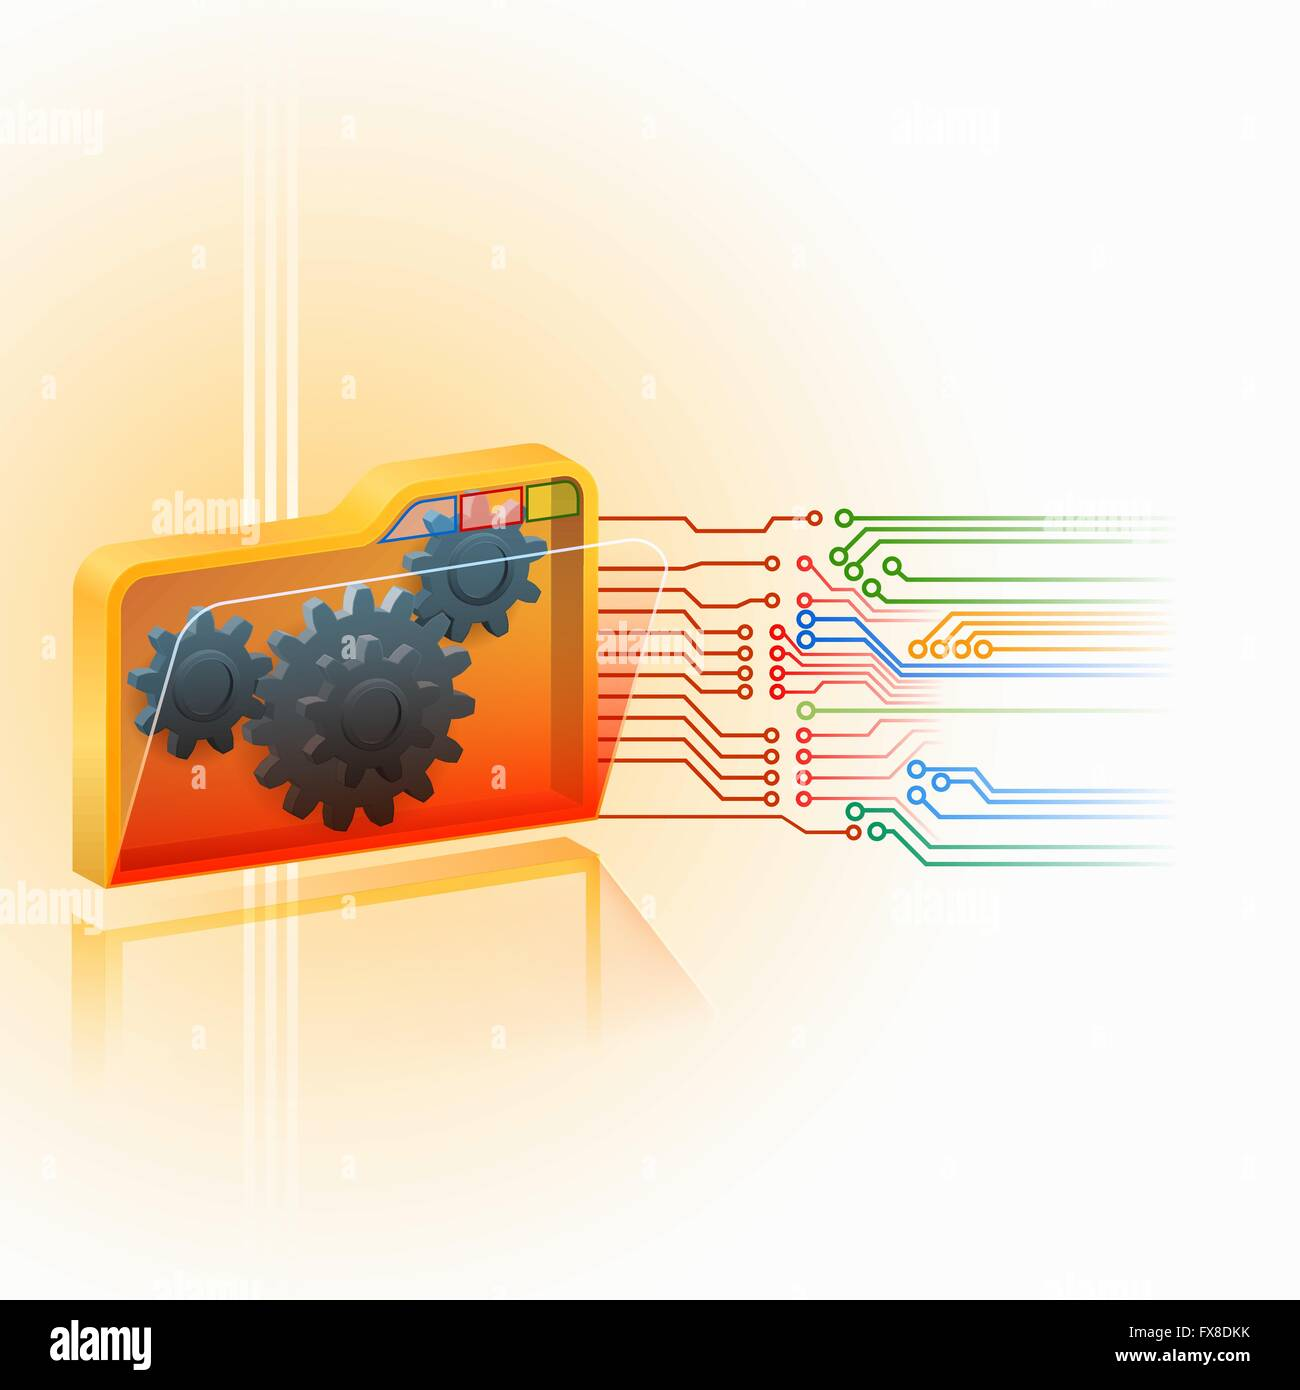 Integrated Circuits Stock Vector Images Alamy Circuit Schematic Symbols Abstract Background With Generic 3d Folder Symbol Artistic Designed Cogwheels Gear Inside And Electronic